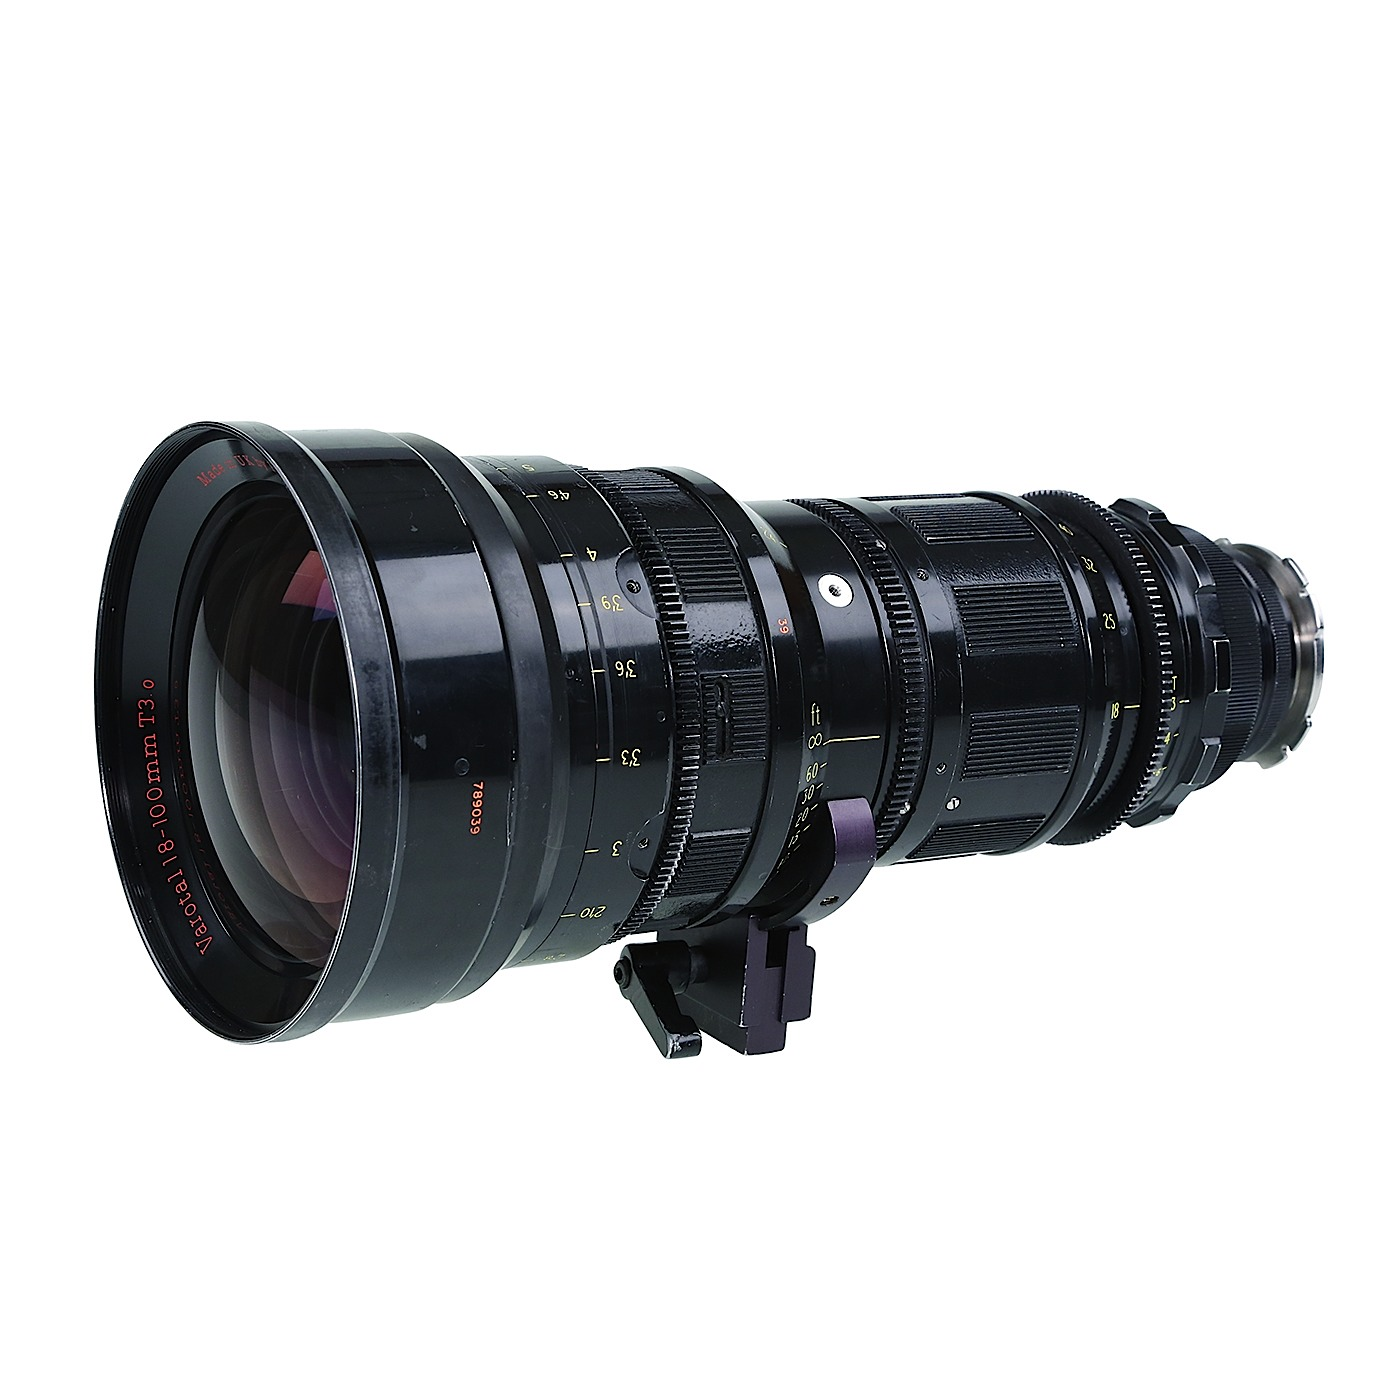 Cooke 18-100mm PL Zoom Lens